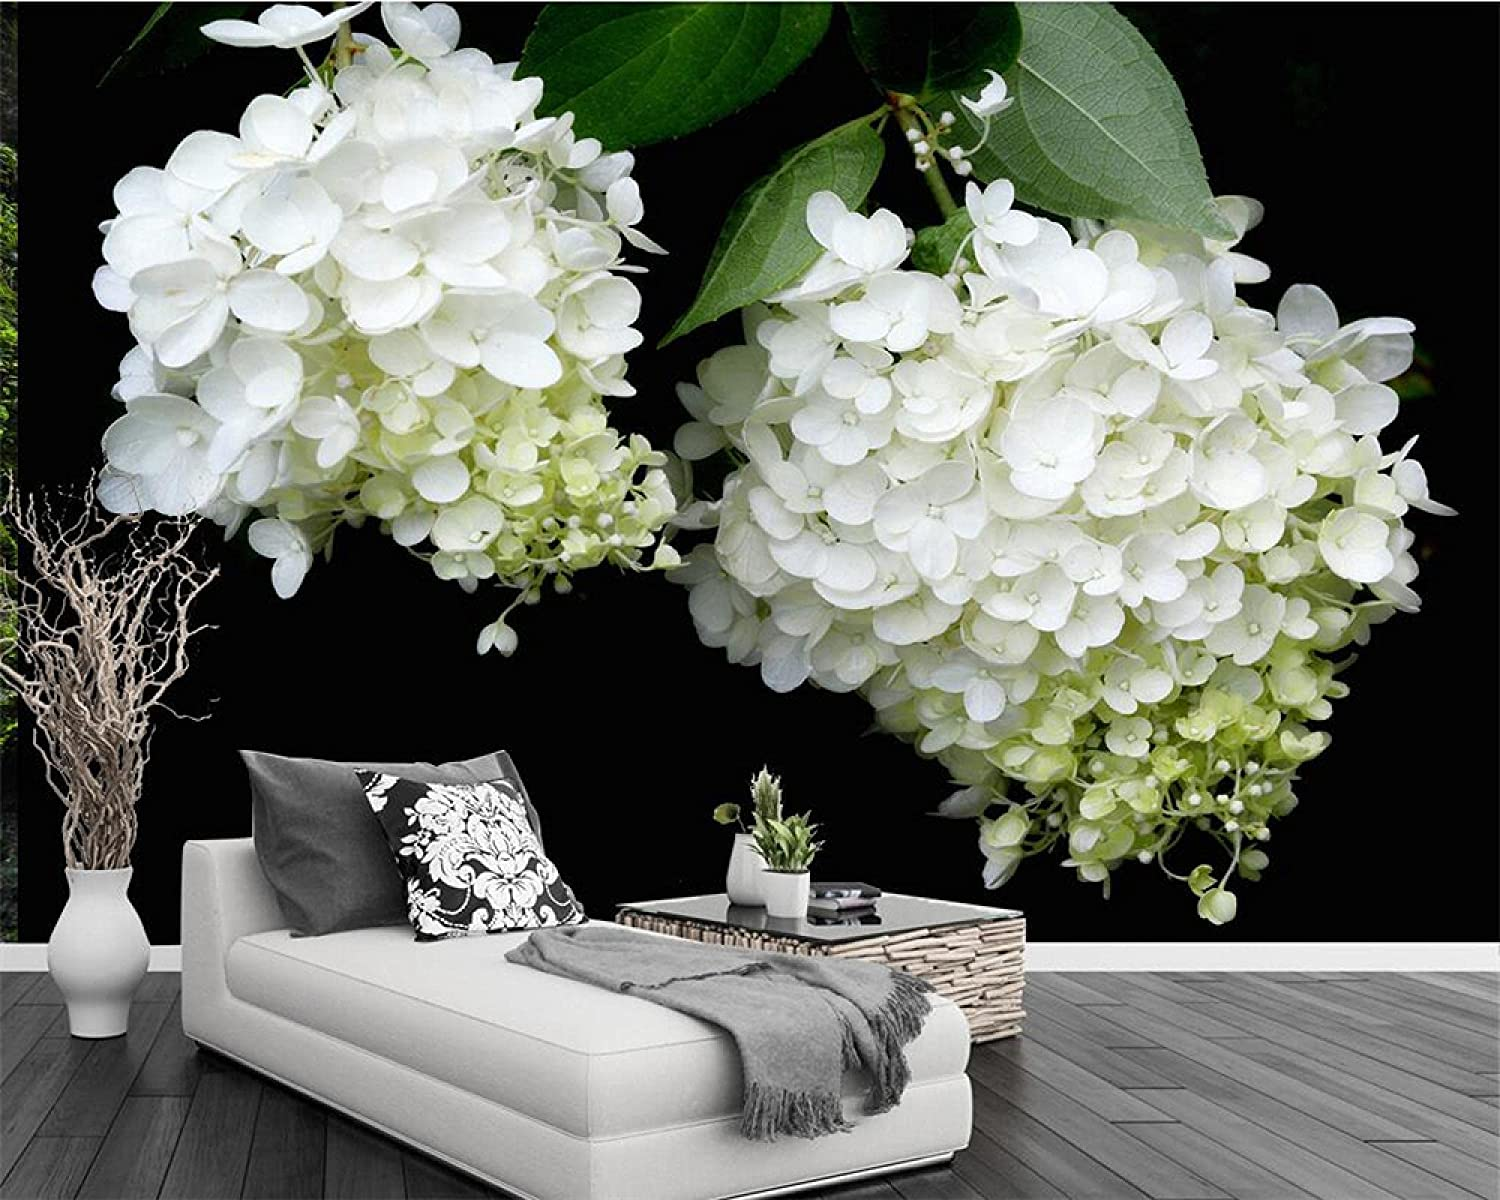 LUOWAN Milwaukee Mall Creative 3D Wall Decals Fashion Removable Challenge the lowest price of Japan ☆ Plant White DIY